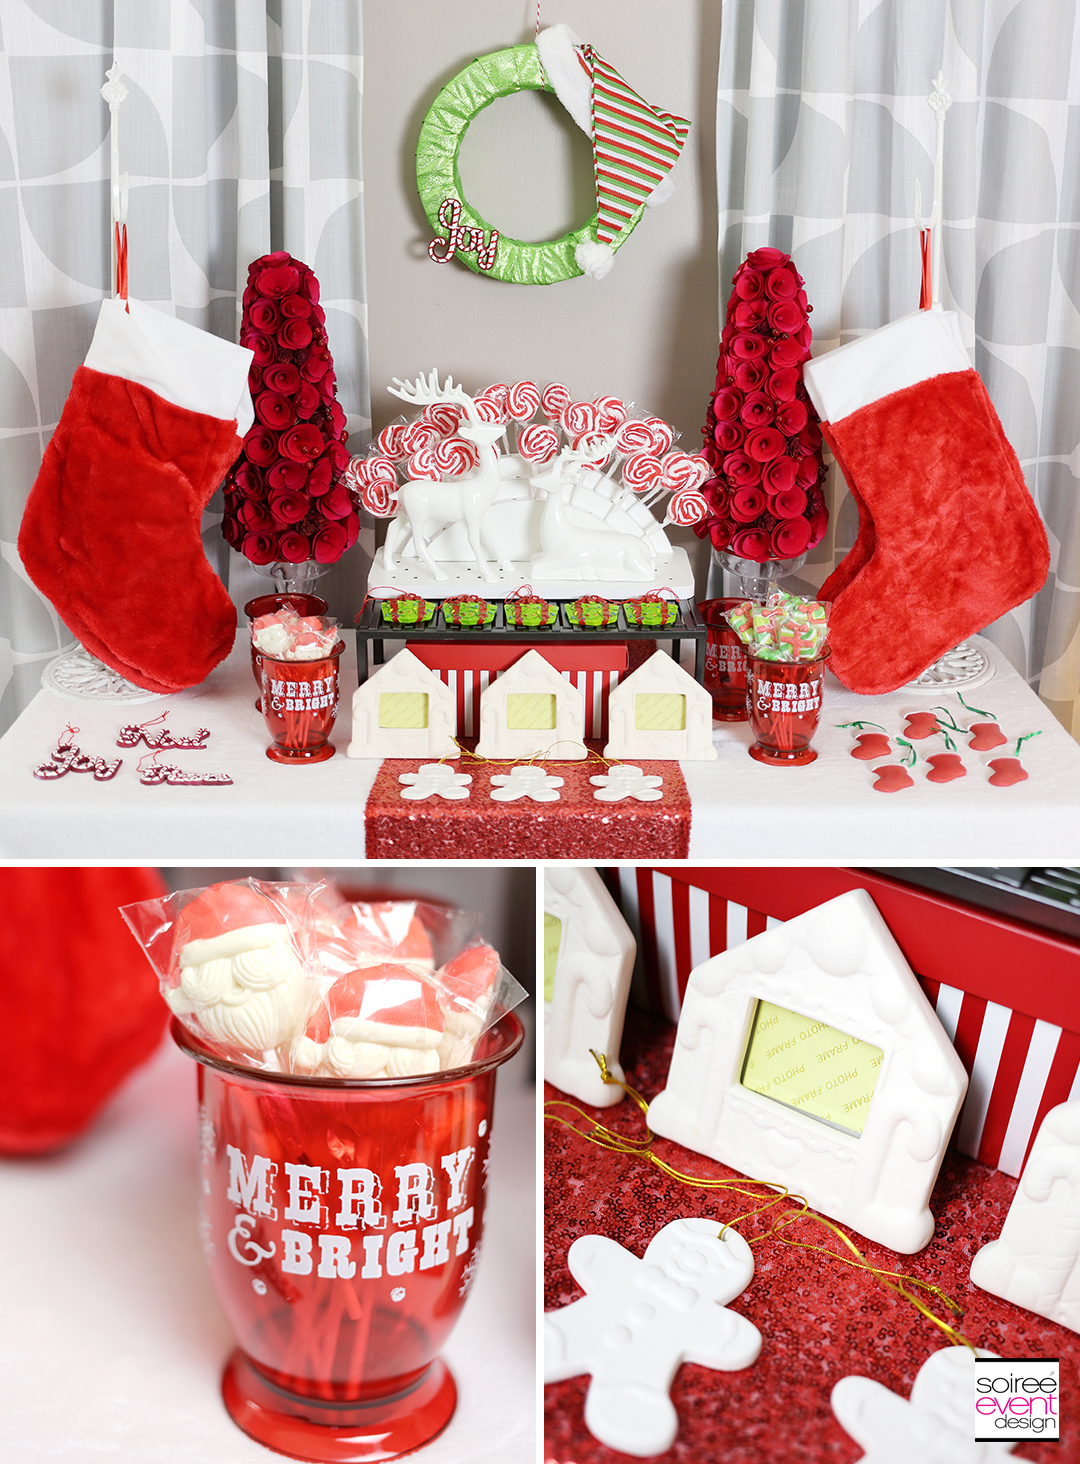 Gift Wrapping Party - Stocking Stuffer Favor Bar